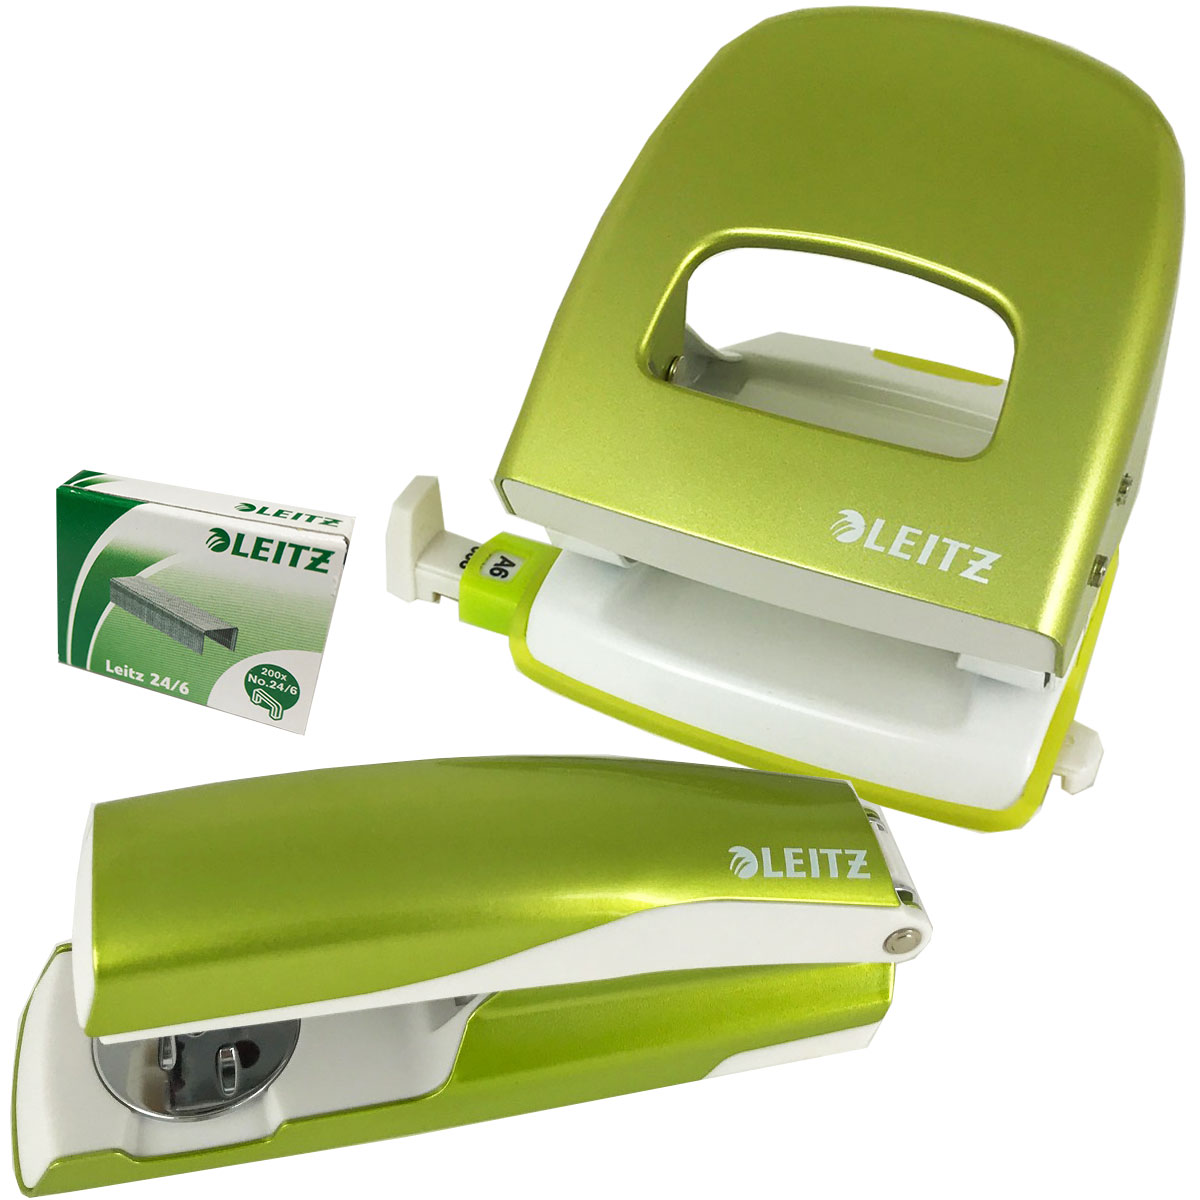 Metallic Green Punch & Stapler Set